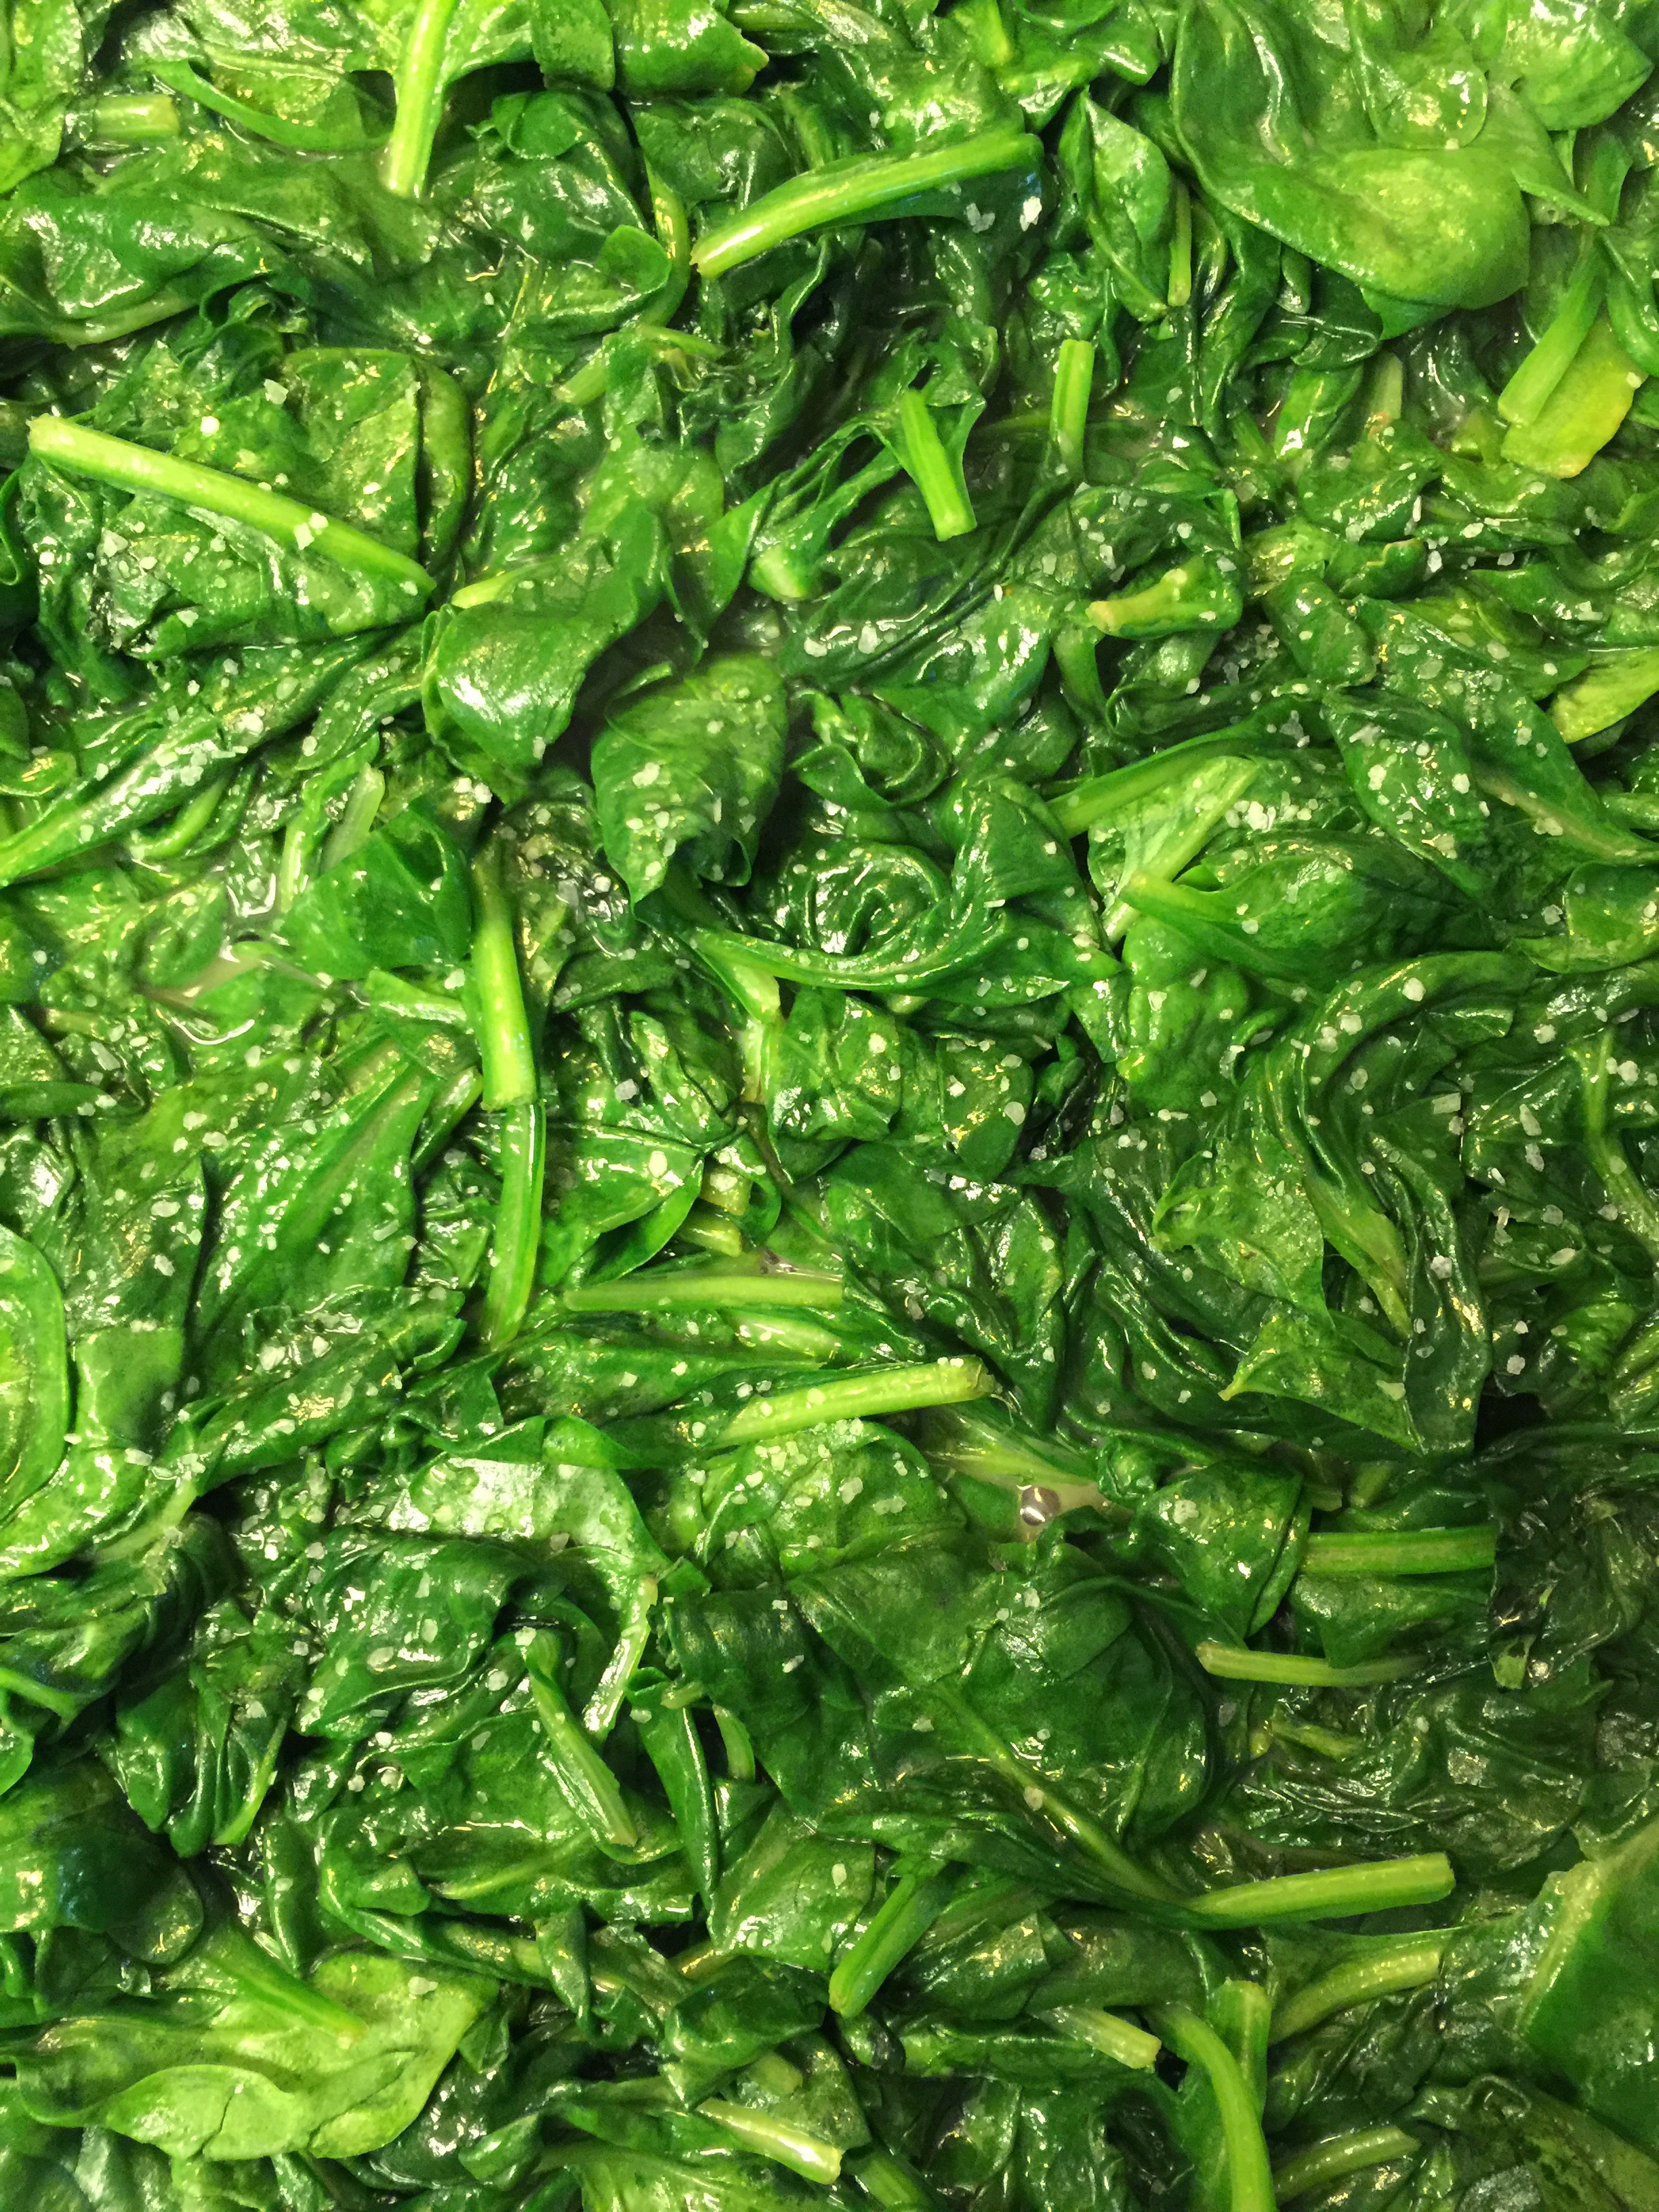 Sauteed Spinach - 1